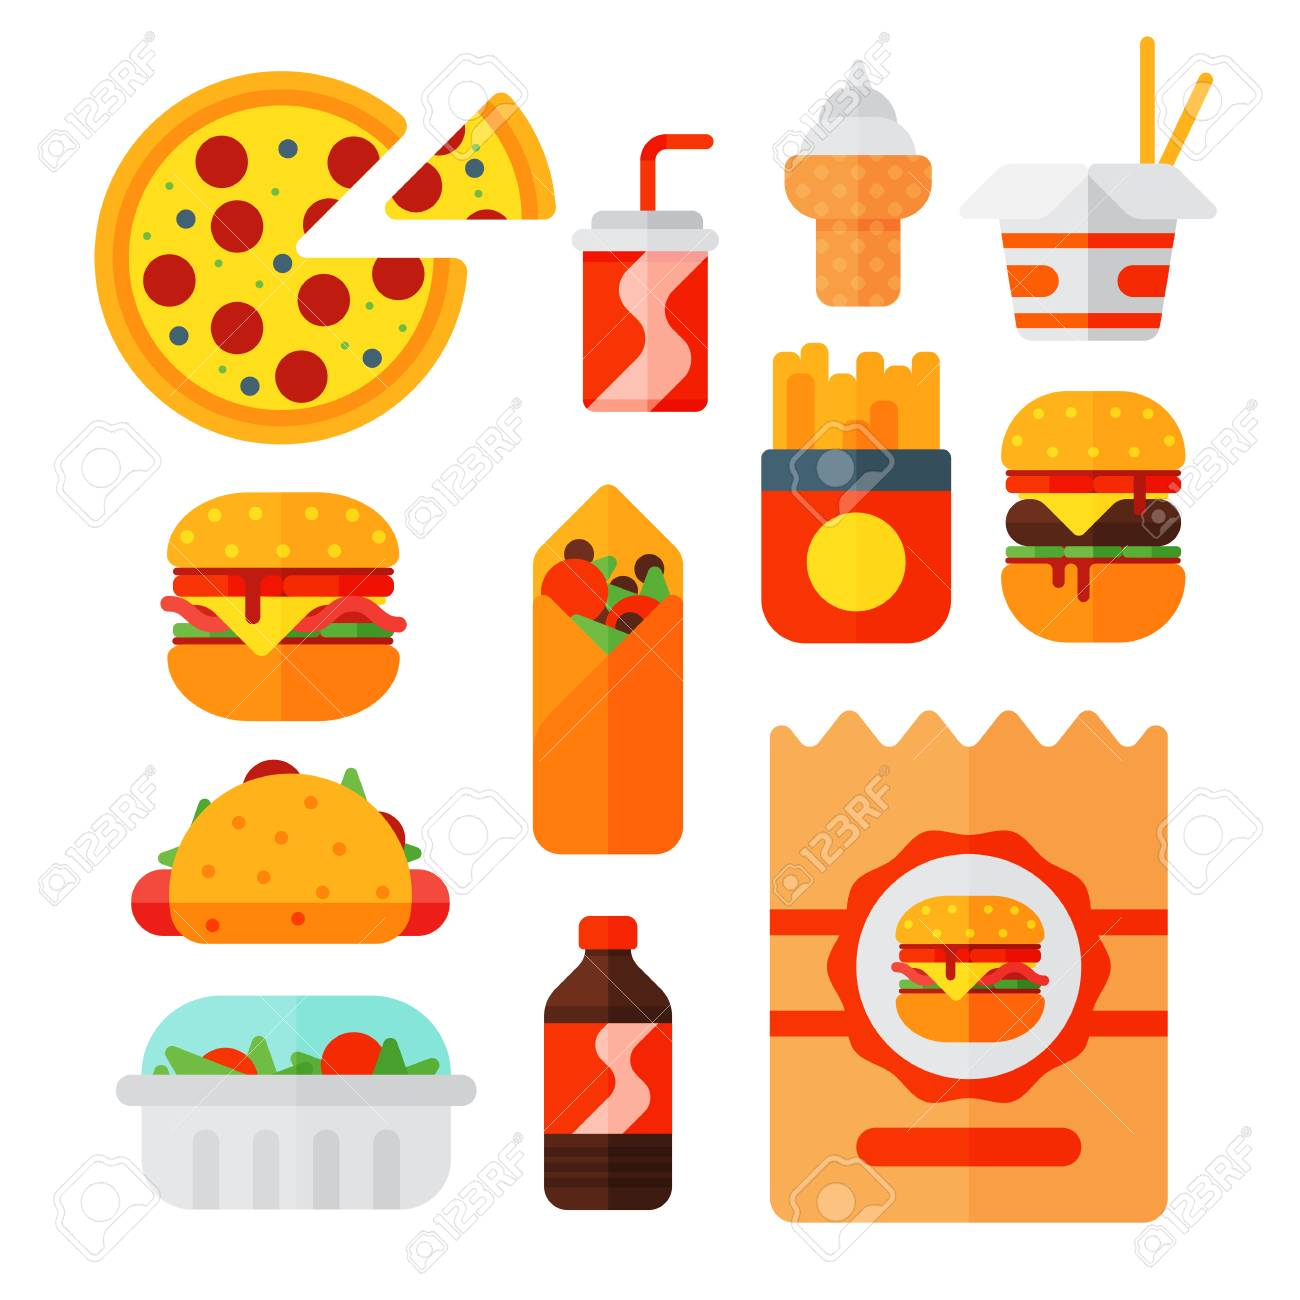 Set Of Colorful Cartoon Fast Food Icons Isolated Restaurant Tasty